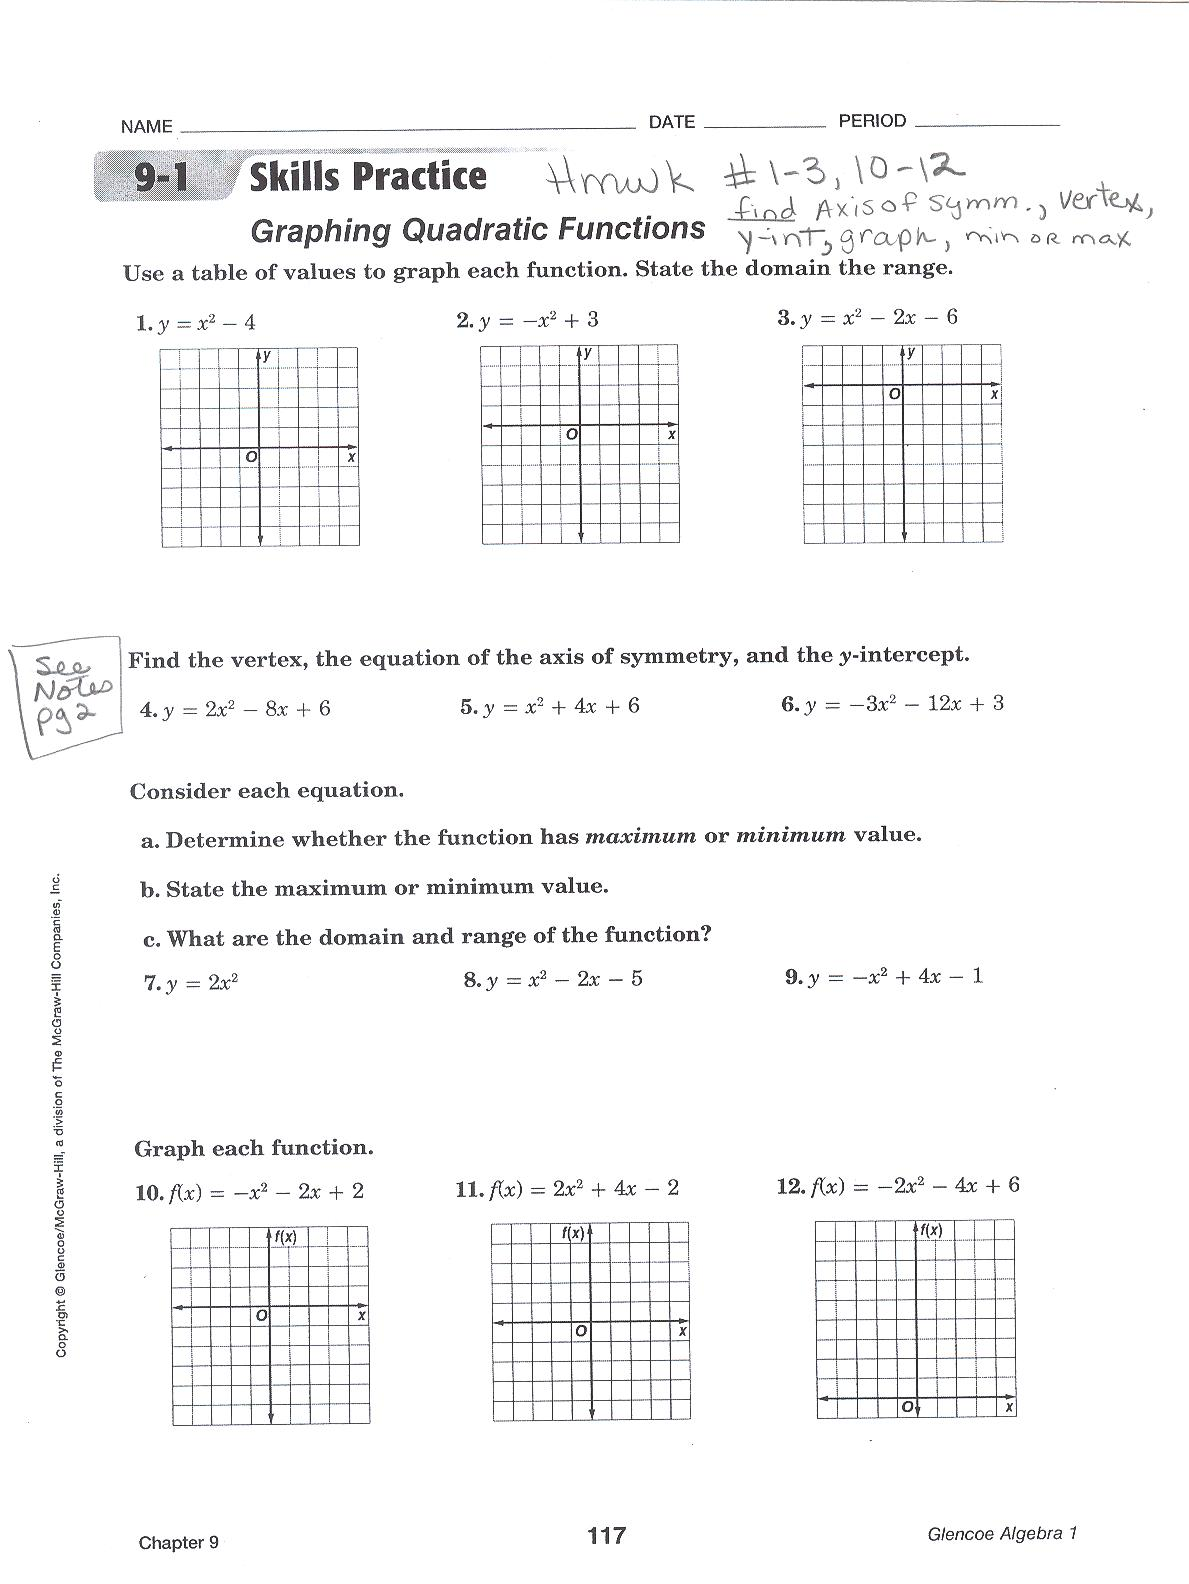 Graphing Quadratic Equations Worksheets